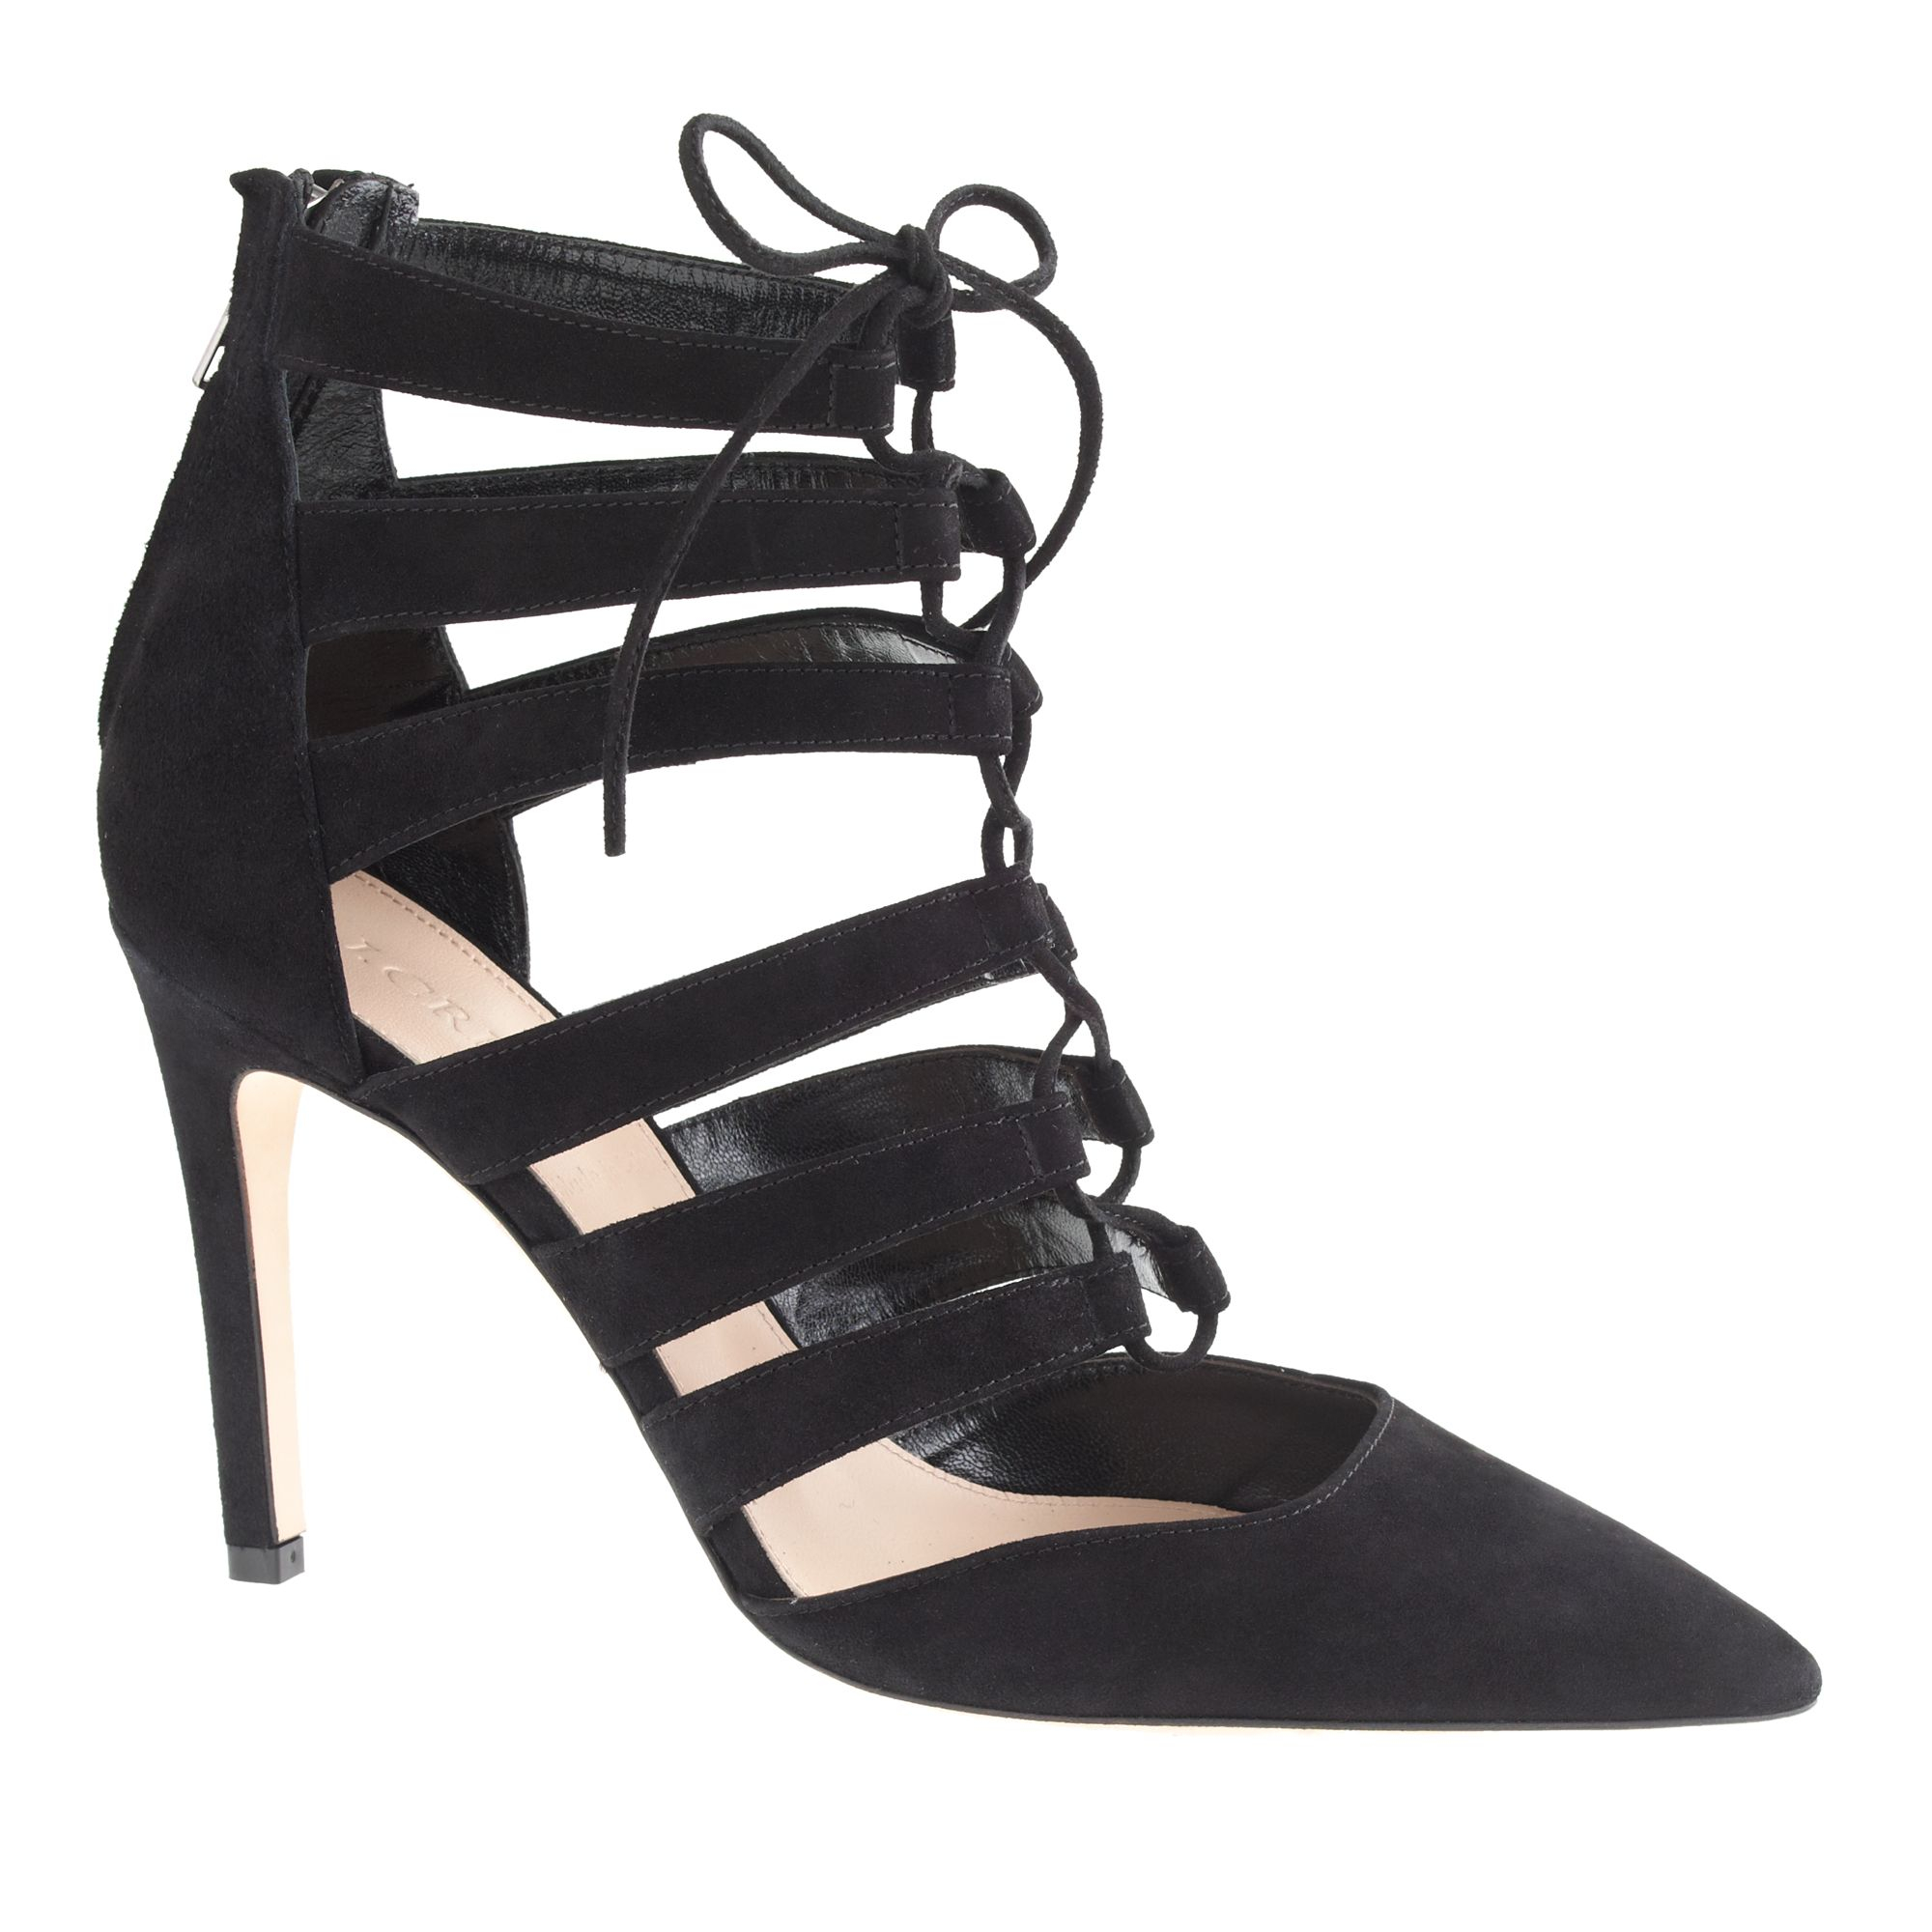 328d59f5d7 Lyst - J.Crew Suede Laceup Cage Pumps in Black